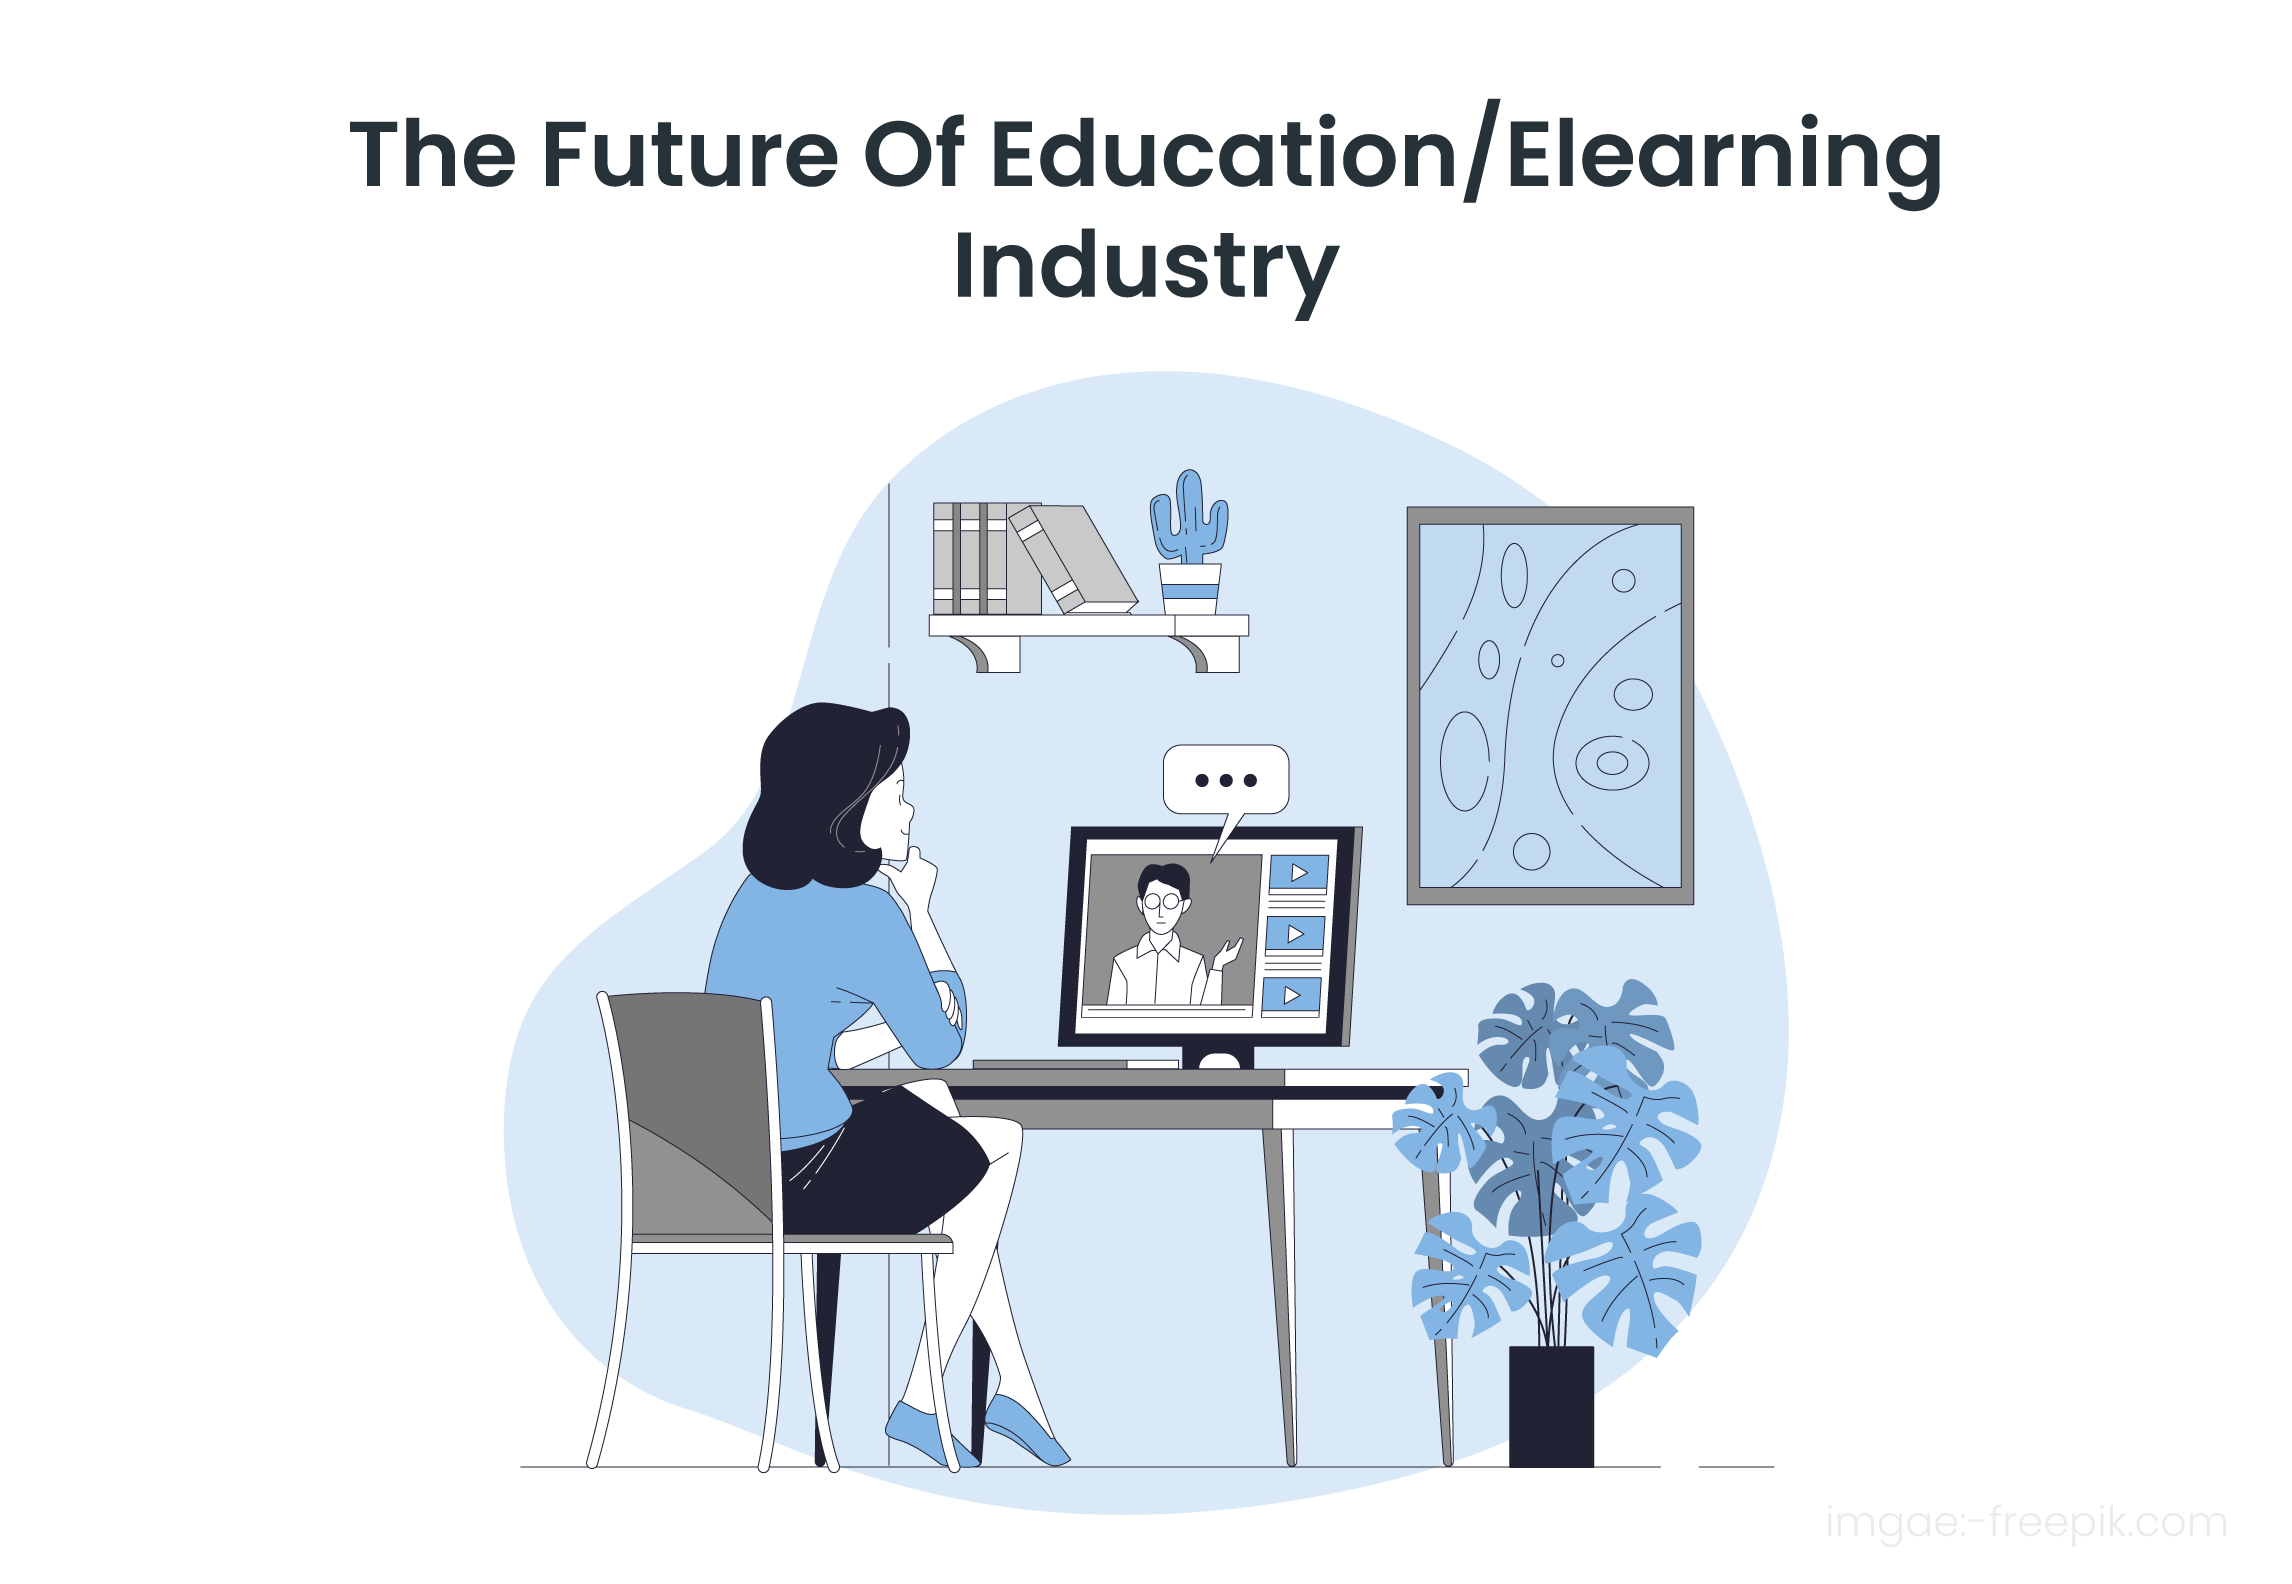 The Future Of Education/Elearning Industry 2